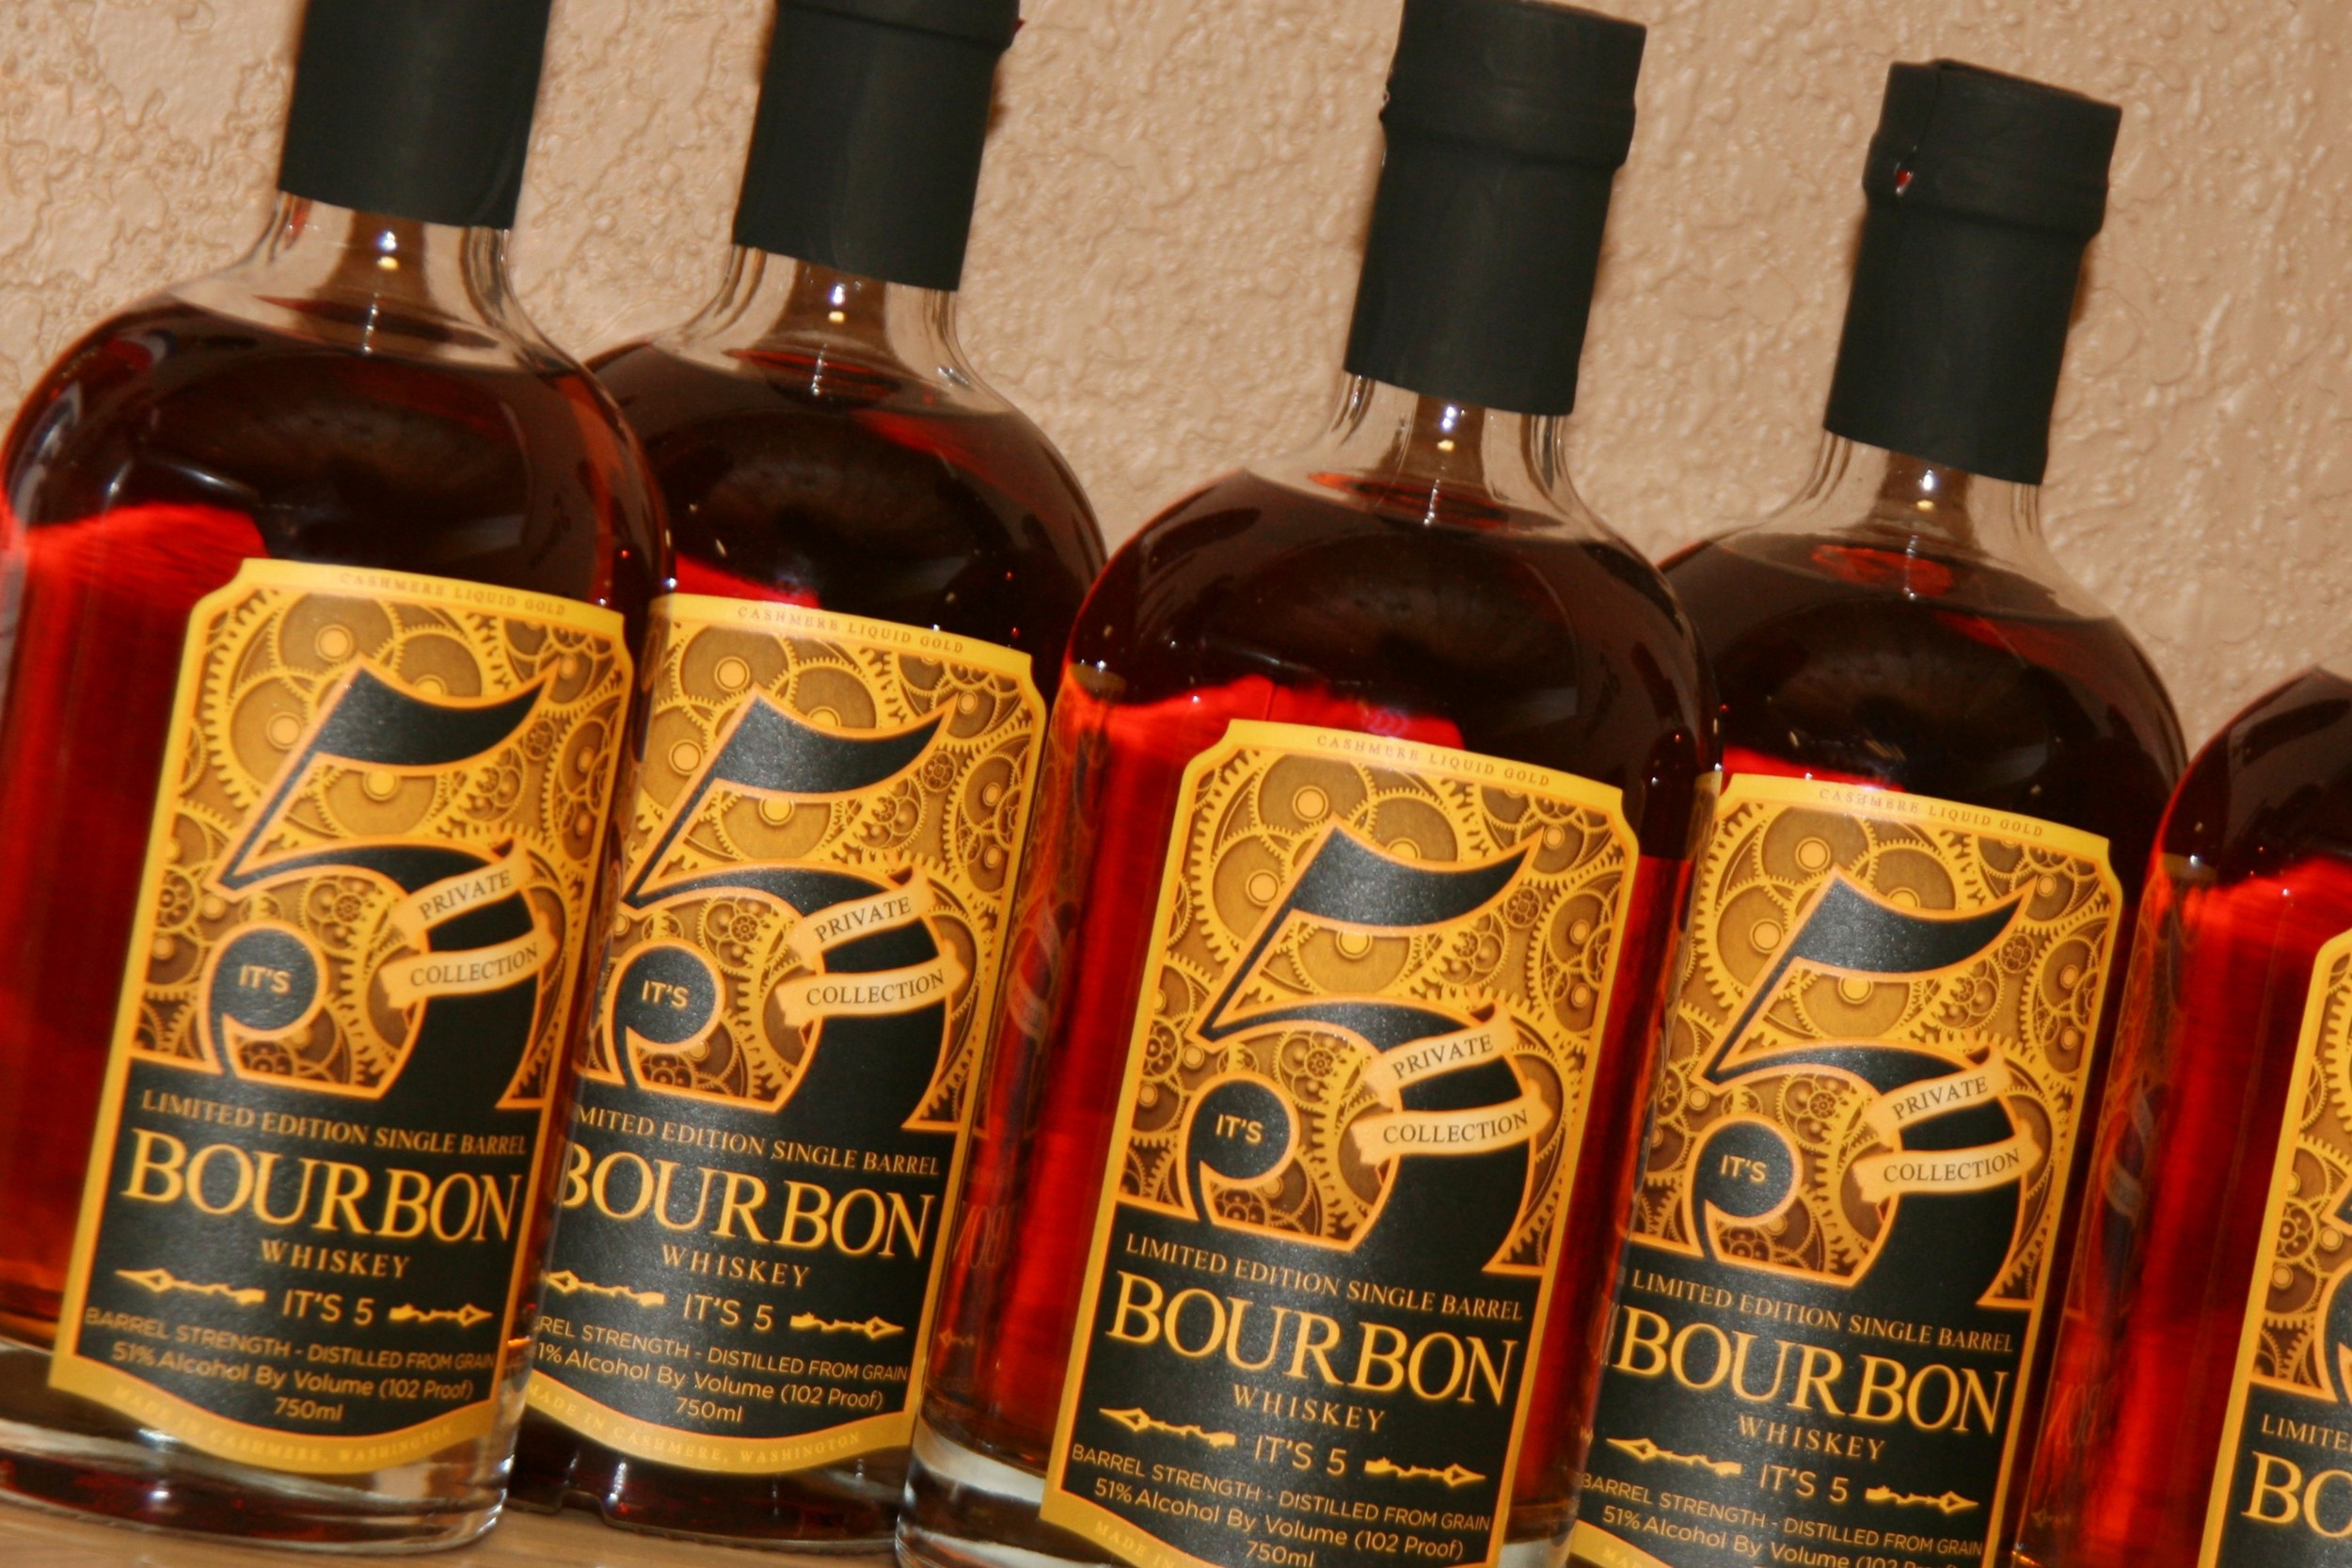 Limited Edition Bourbon Whiskey, designed for It's 5 Artisan Distillery in Cashmere, WA